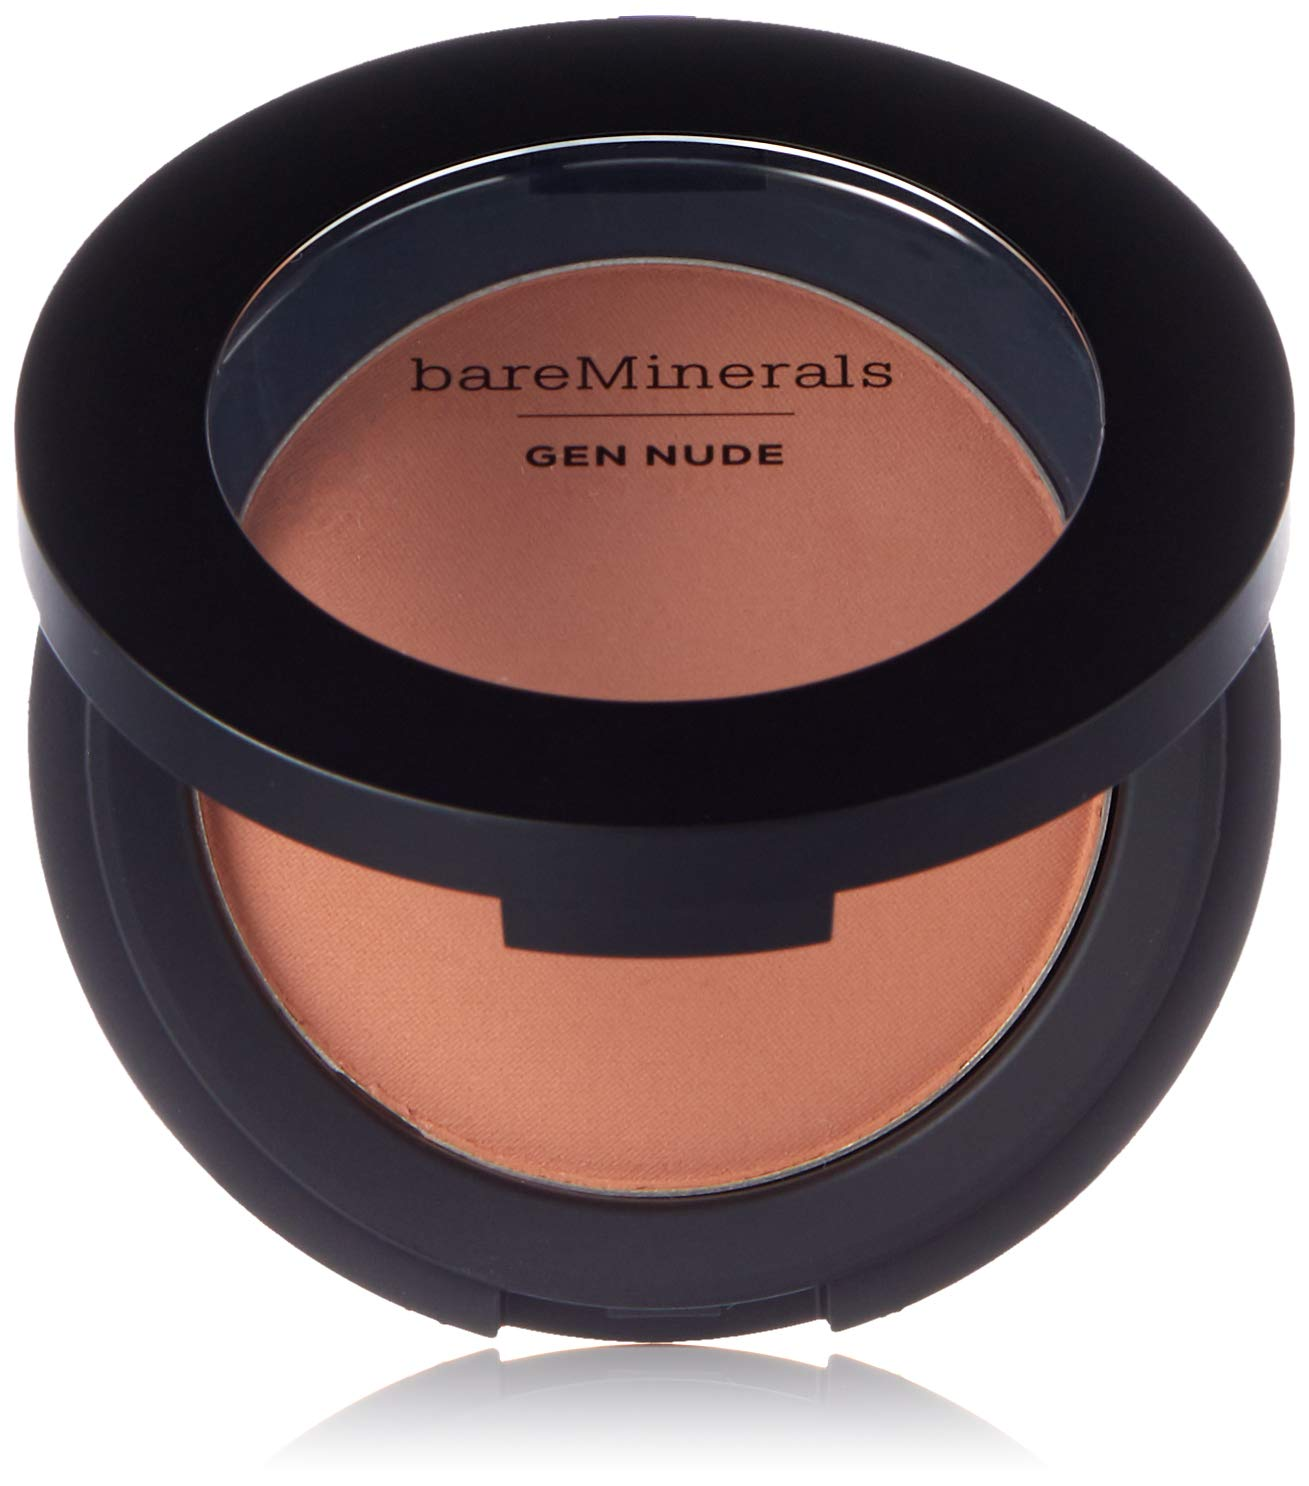 bareMinerals Gen Nude Powder Blush Lets Go Nude for Women, 0.21 Ounce